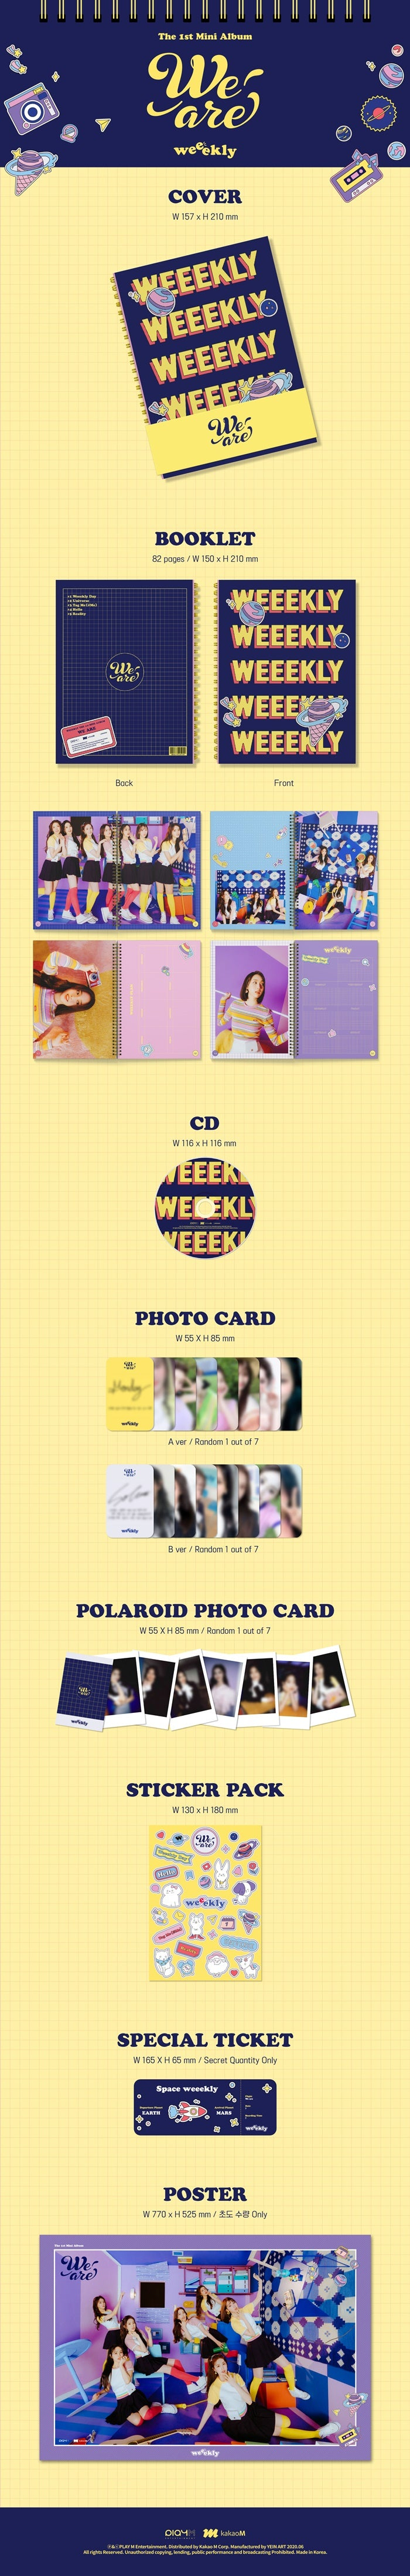 Weekley's 1st Mini Album We are Product Detail